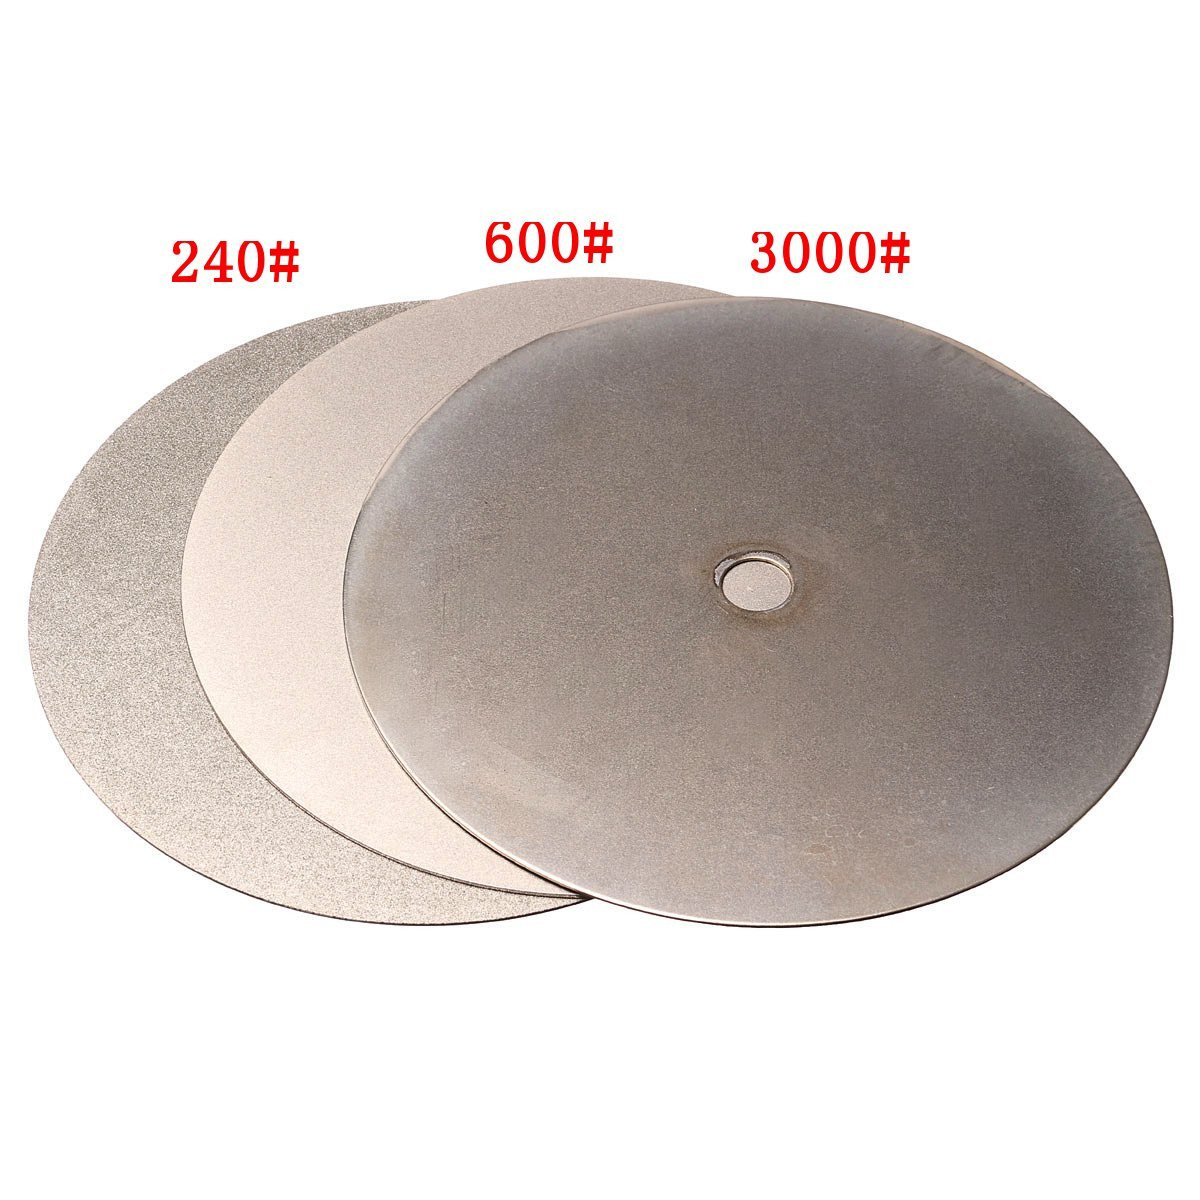 3Pcs 150mm 6 Inch Diamond Grinding Wheel Grit 240# 600# 3000# Flat Lap Disk Wheel Grinding Pad Tool Power Tool Accessories